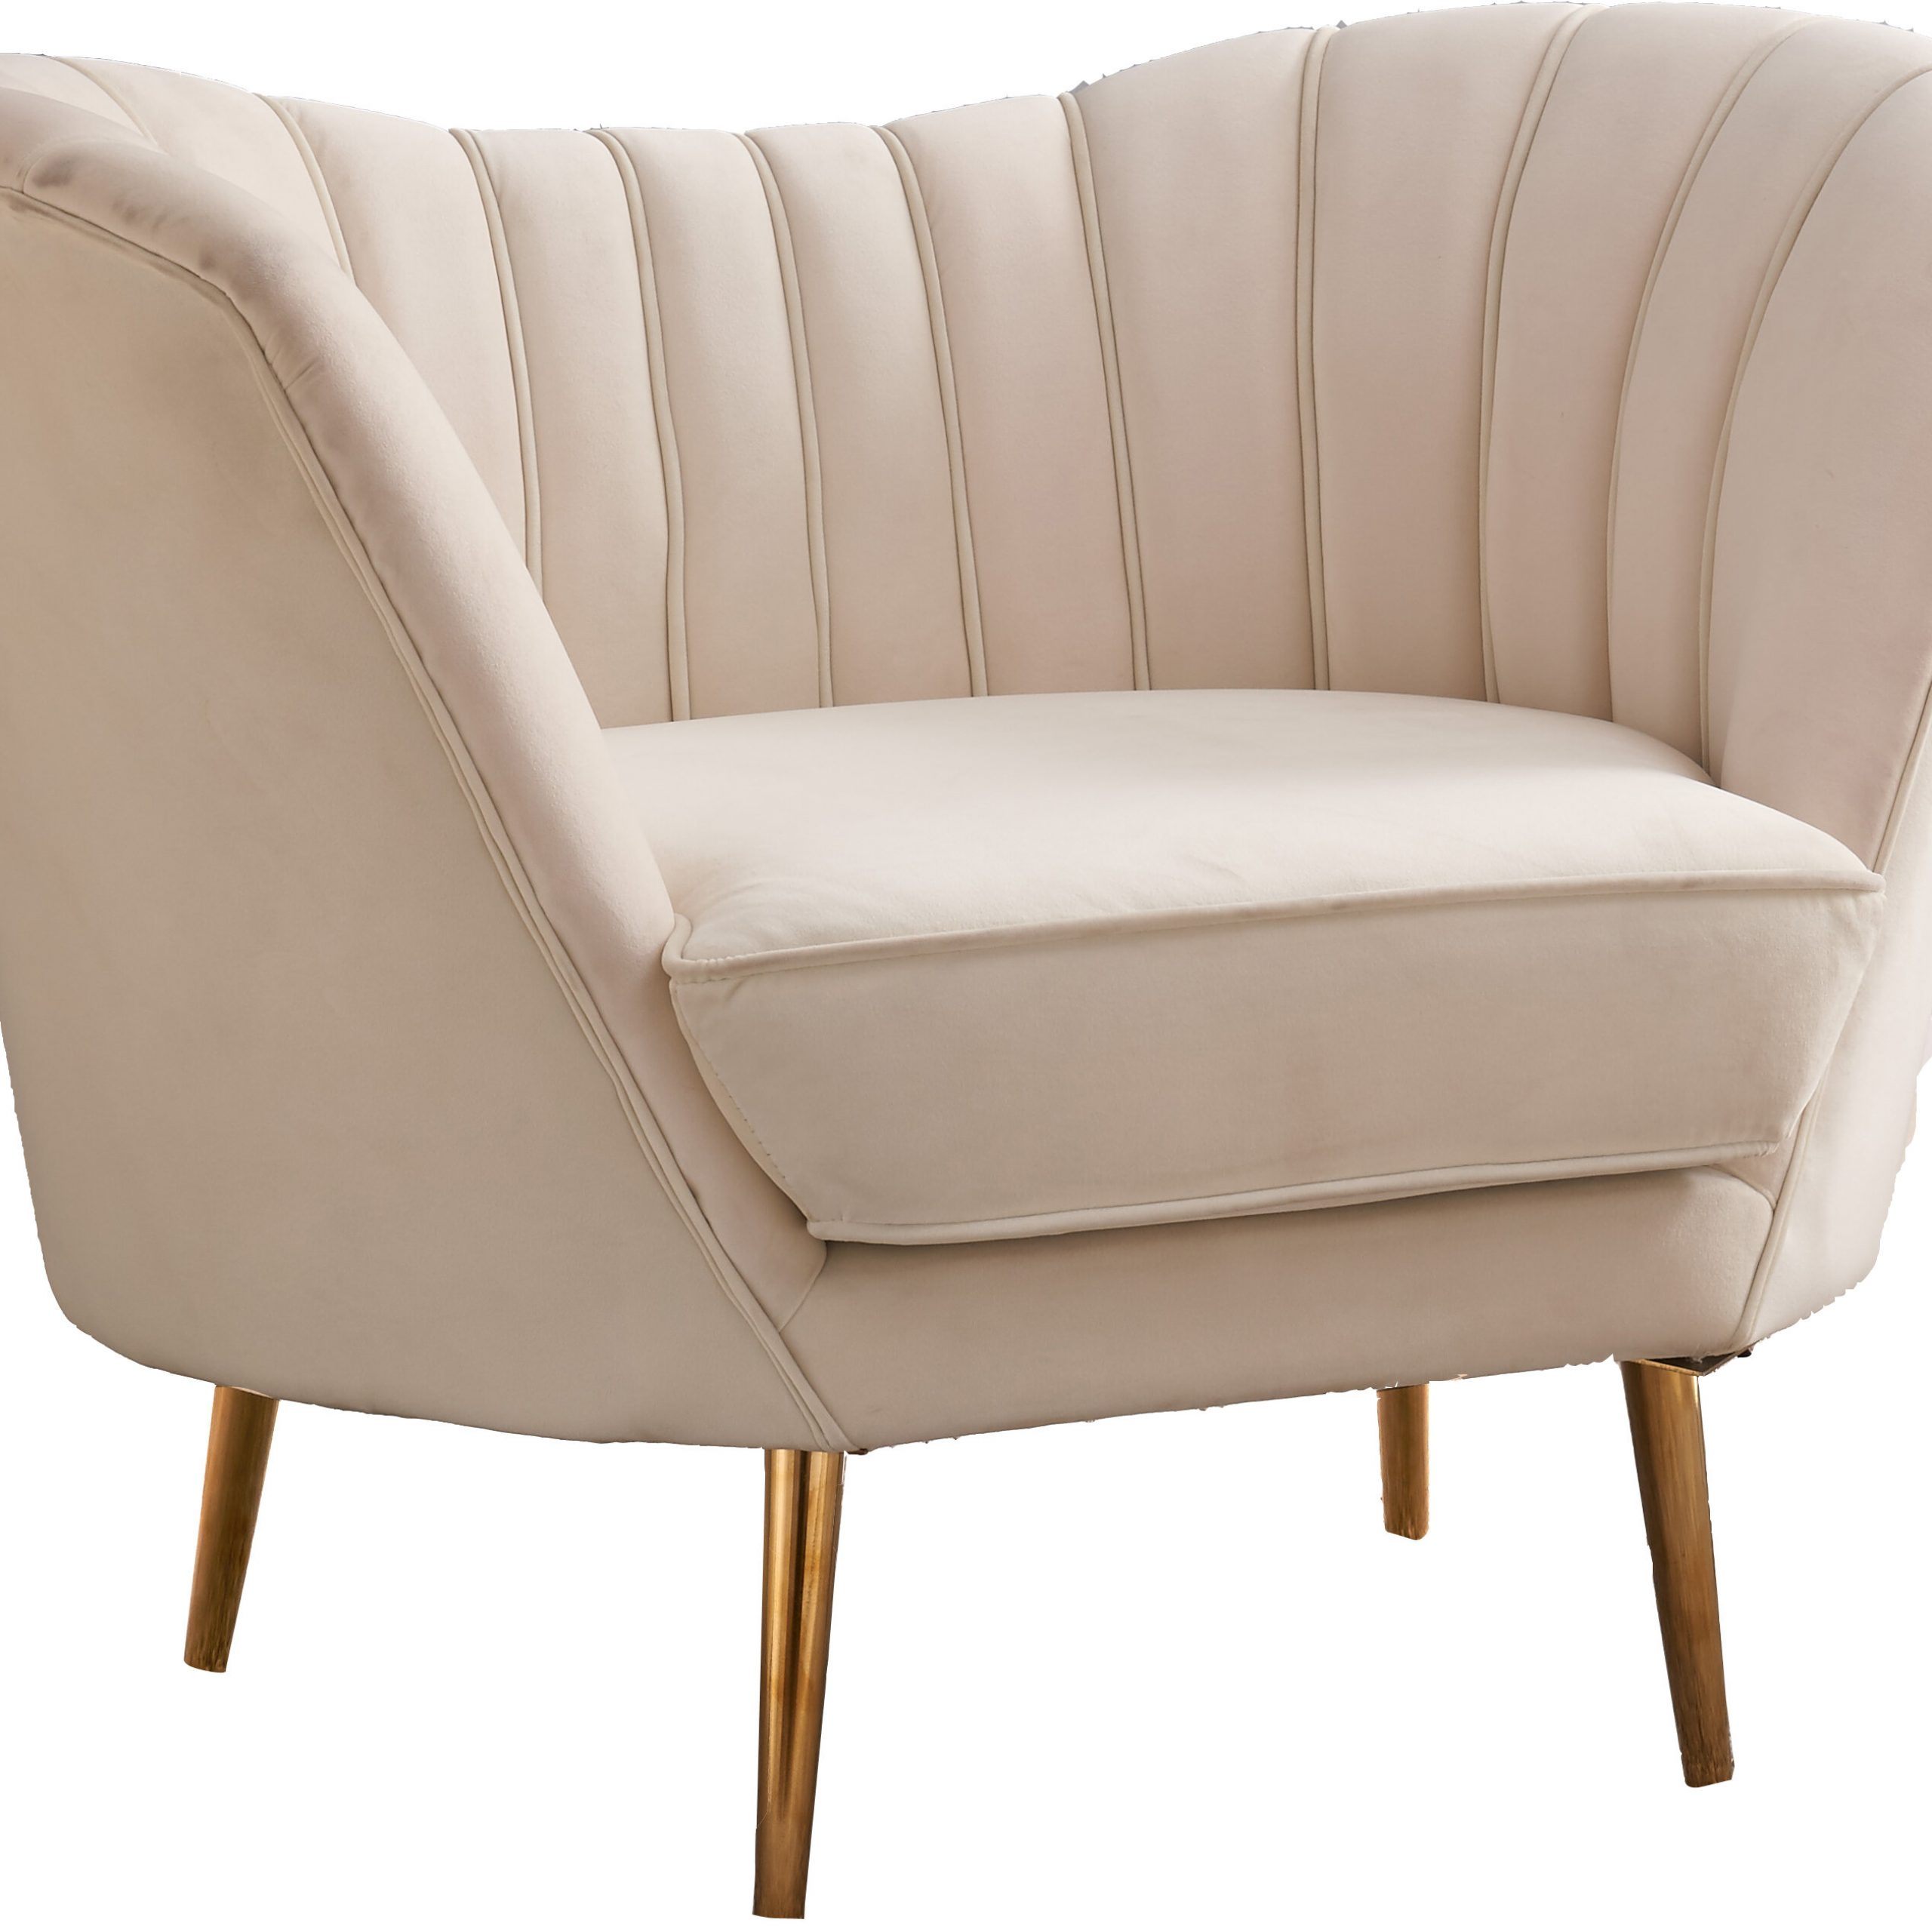 Koger Barrel Chair With Regard To Louisiana Barrel Chairs And Ottoman (View 6 of 15)